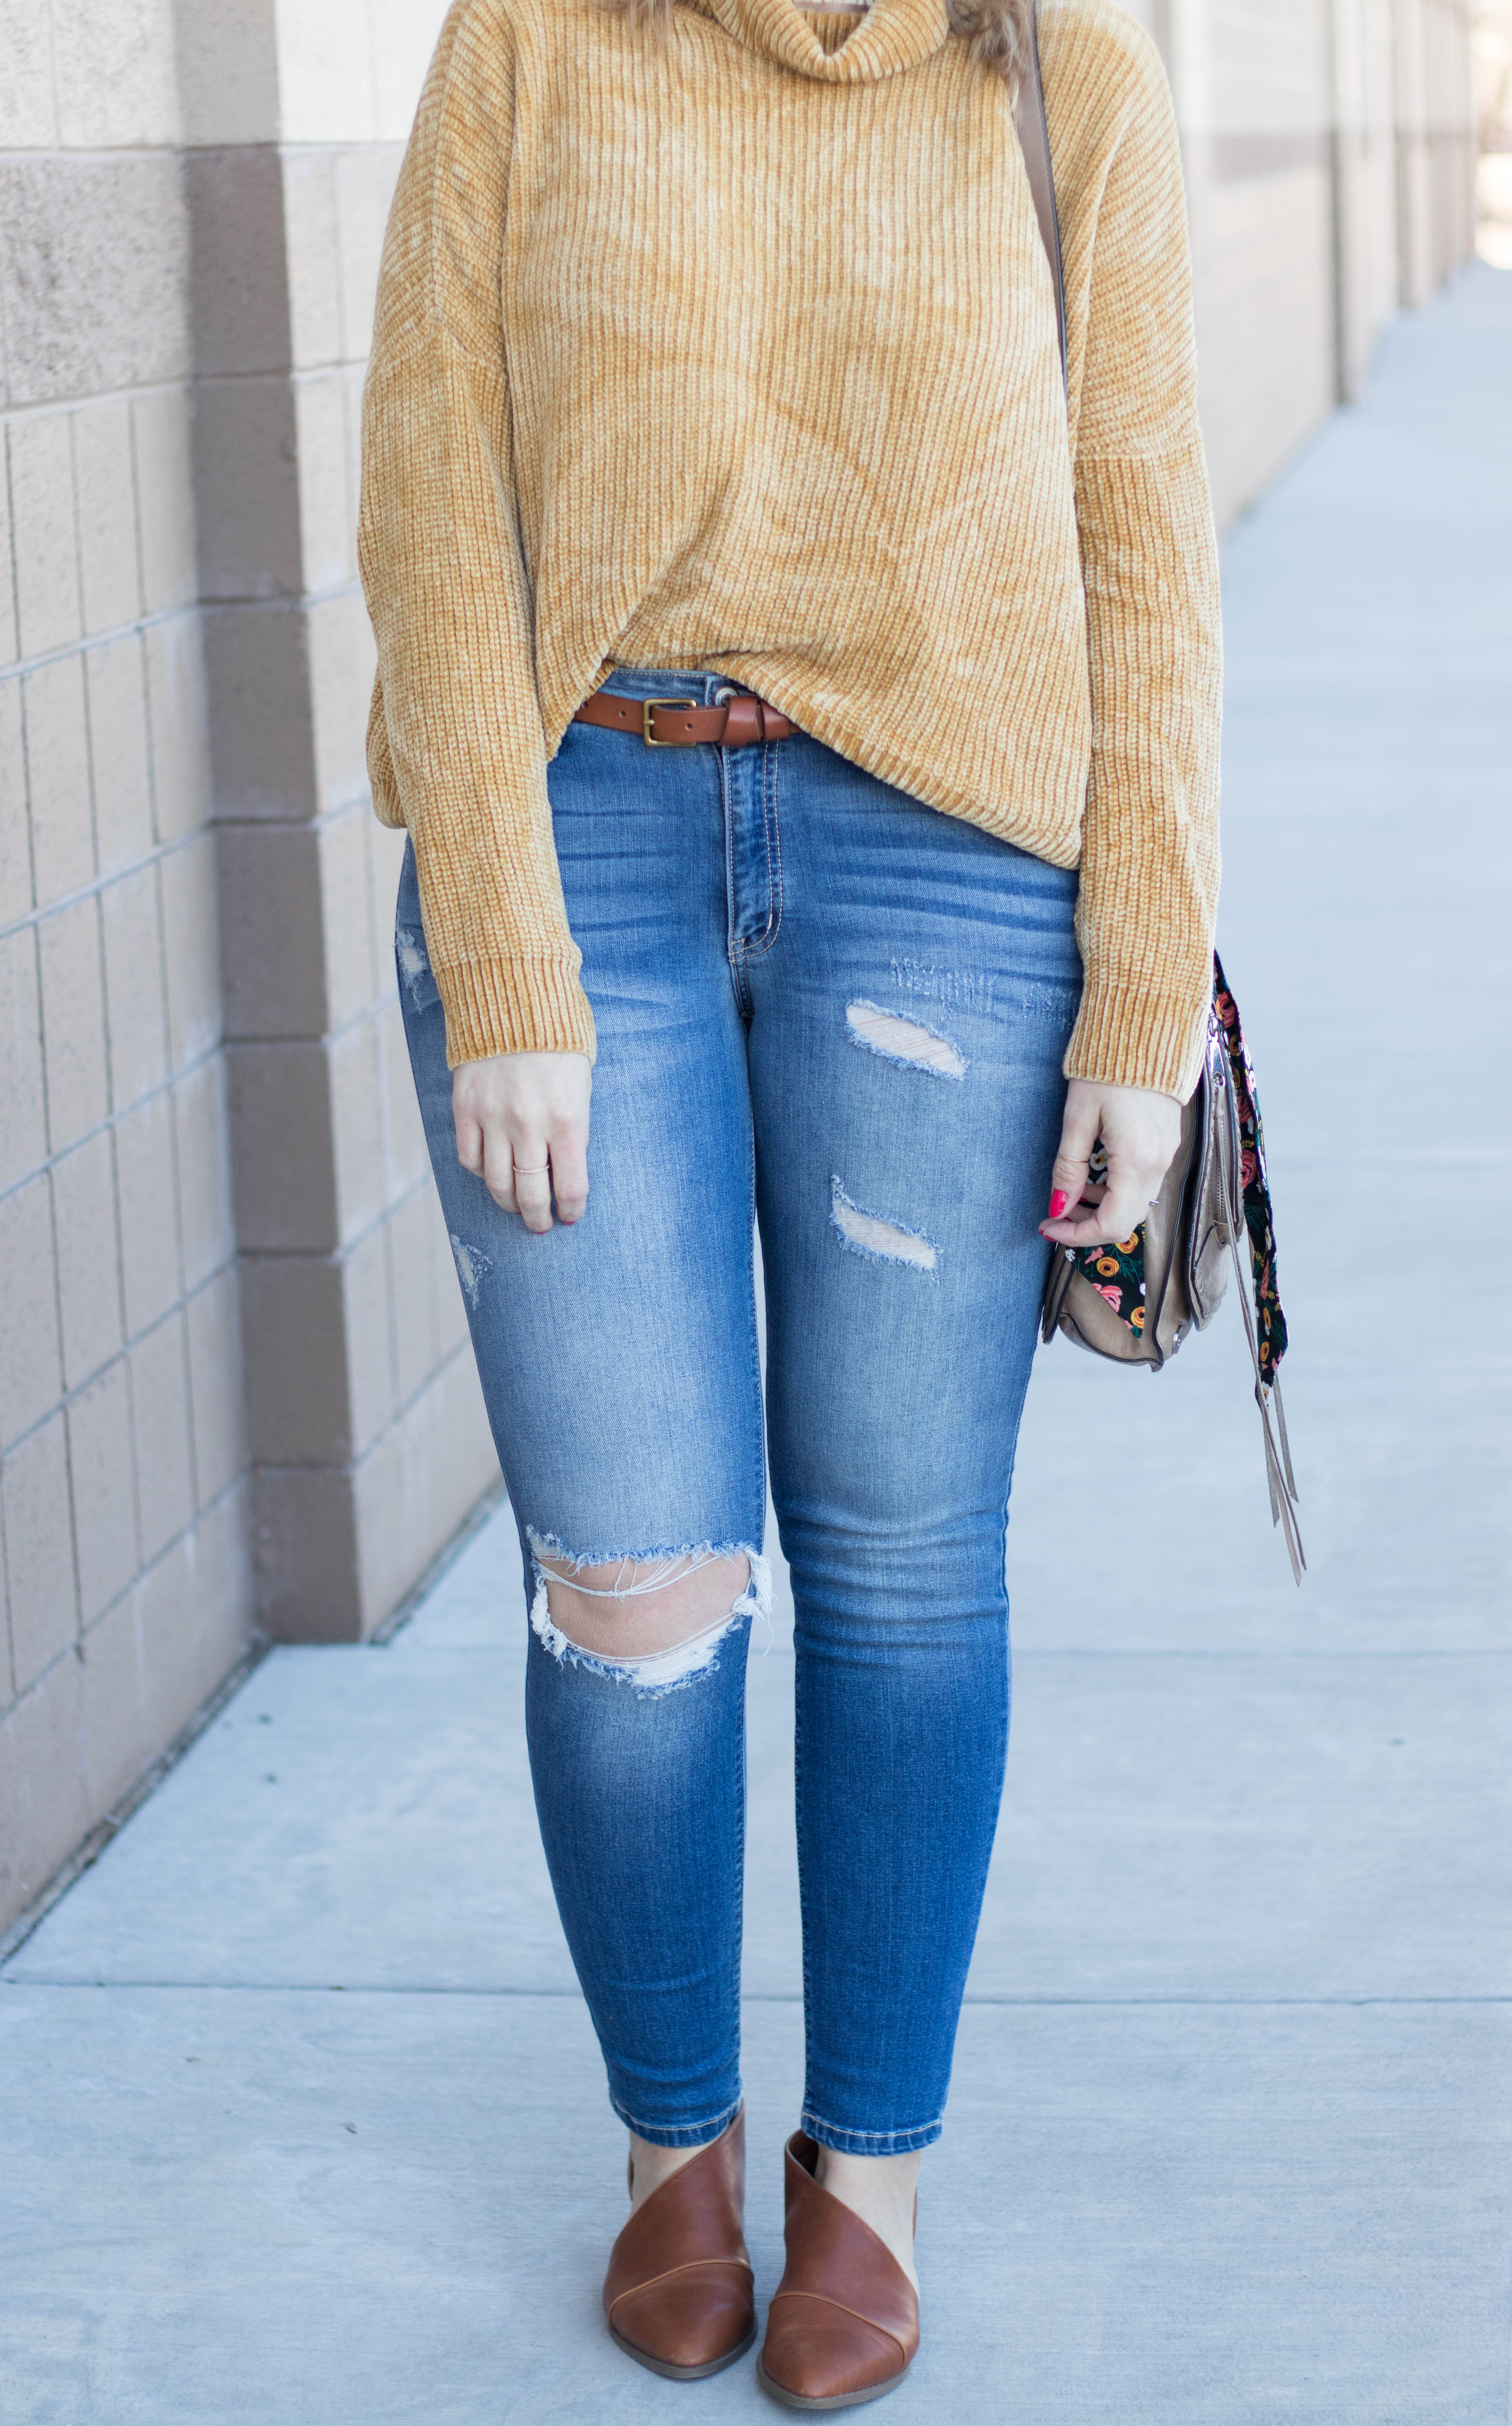 free people dupe cut out booties #freepeople #targetstyle #distressedjeans